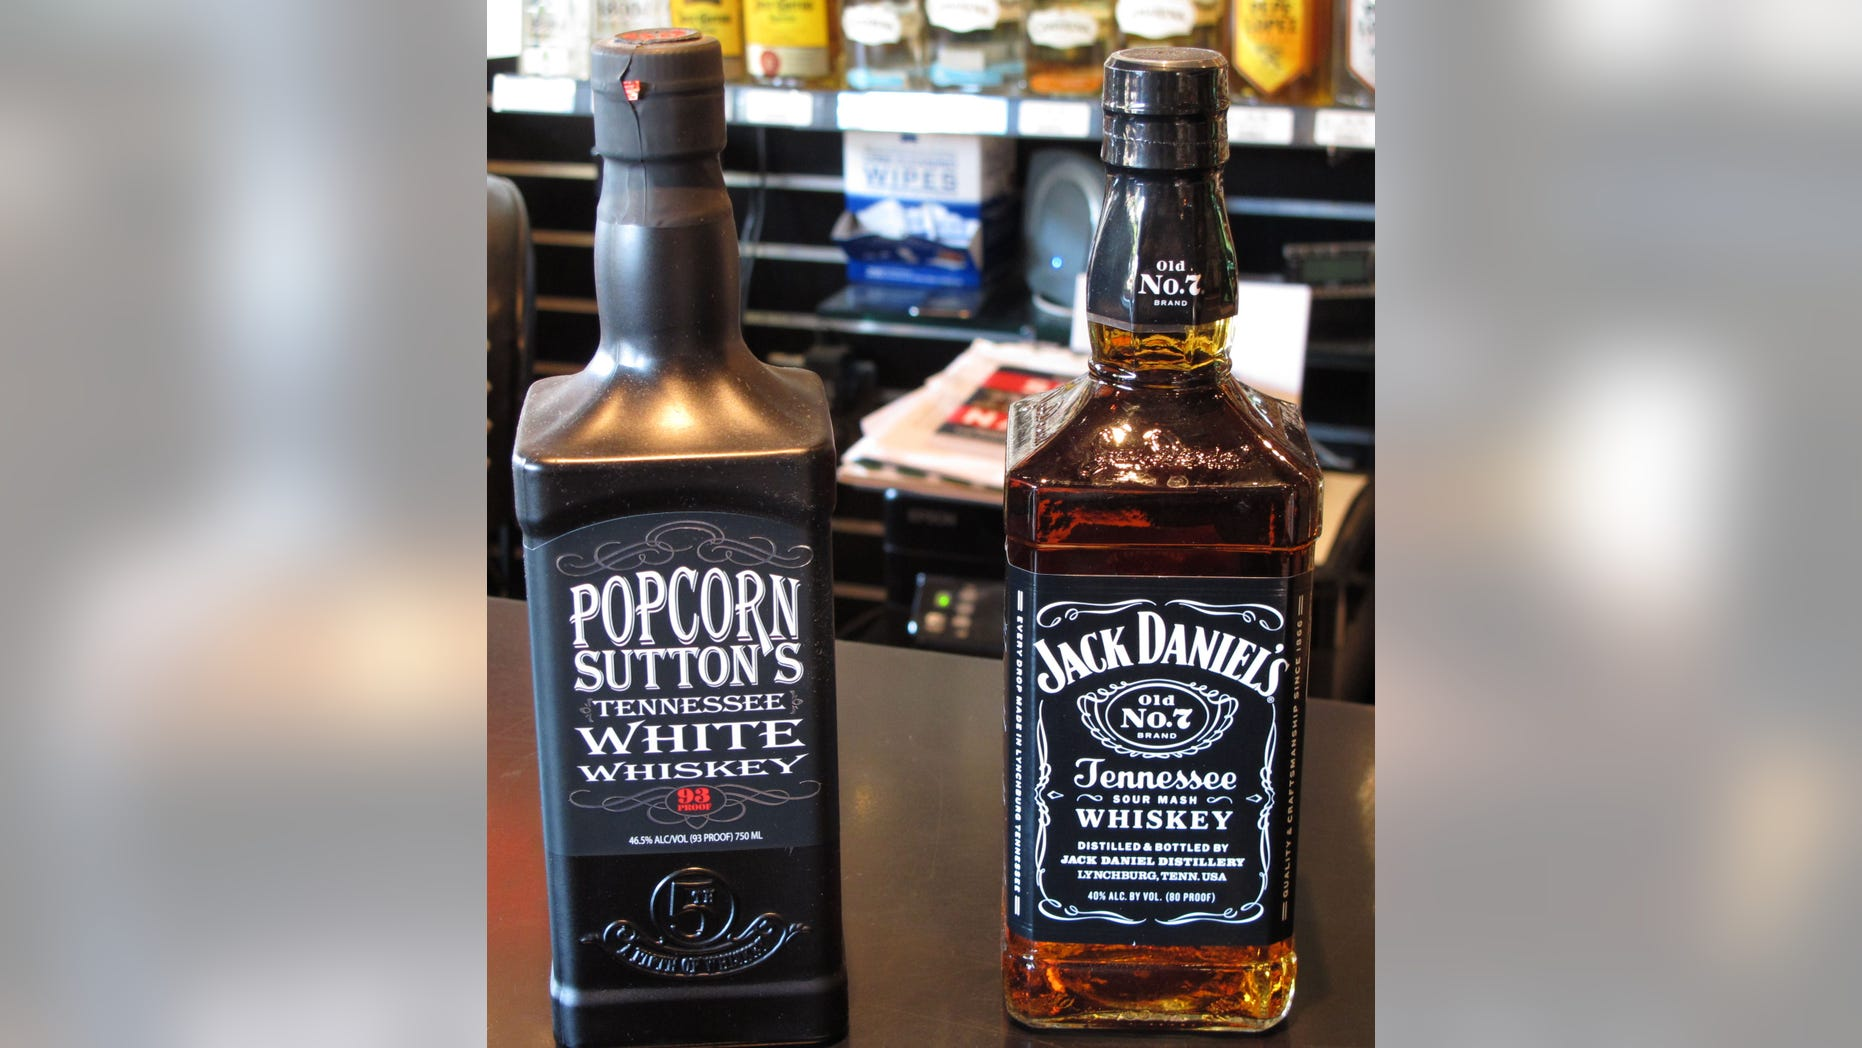 Bottles of Popcorn Suttons Tennessee White Whiskey and Jack Daniels Tennessee whiskey sit side by side at a Louisville, Ky., liquor store.